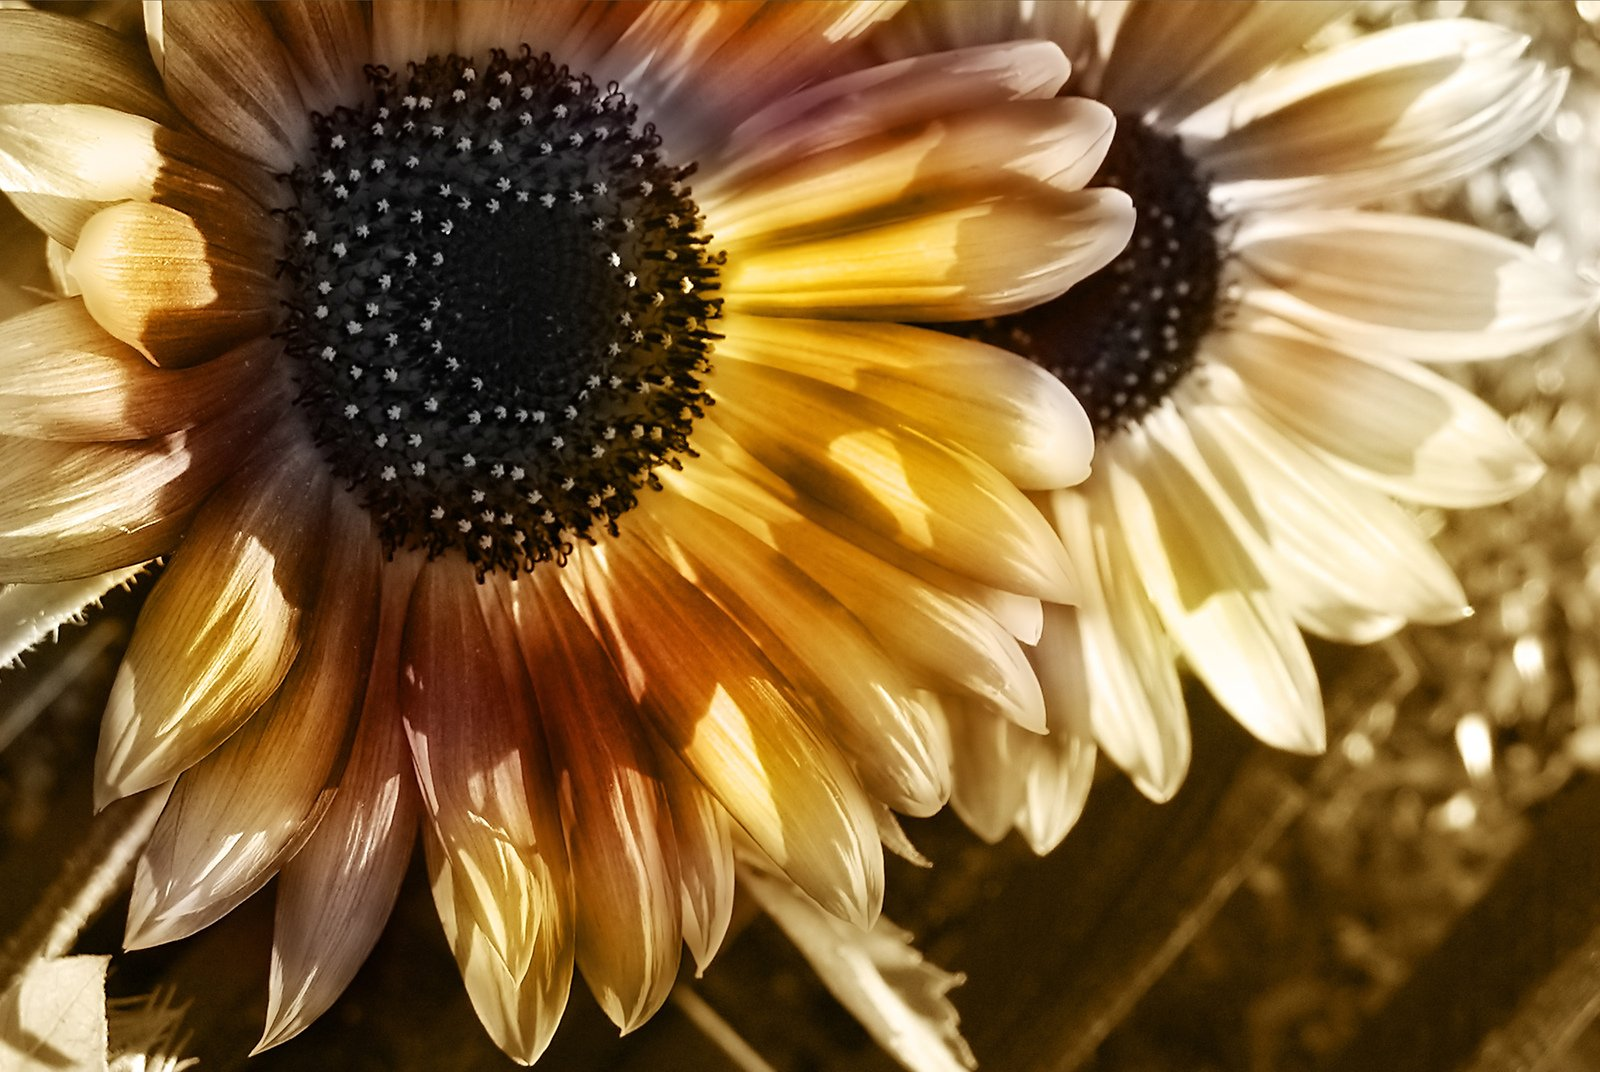 Free Two Sunflowers Stock Photo - FreeImages.com